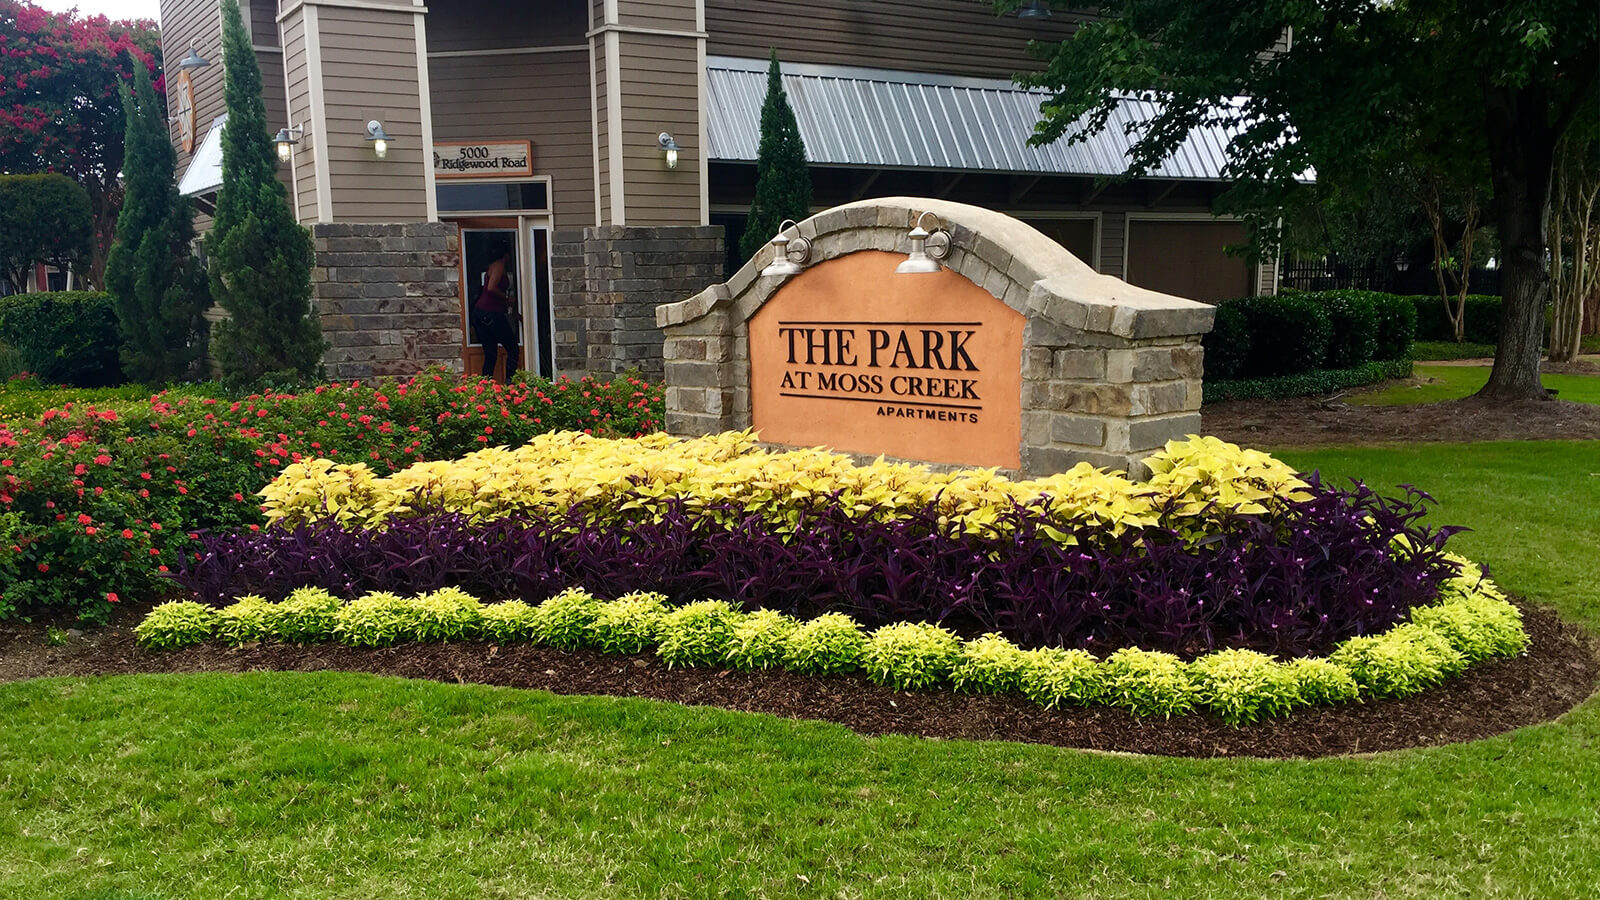 sign for The Park apartments with structured flowerbed containing rows of ornamental grass and other colored plants